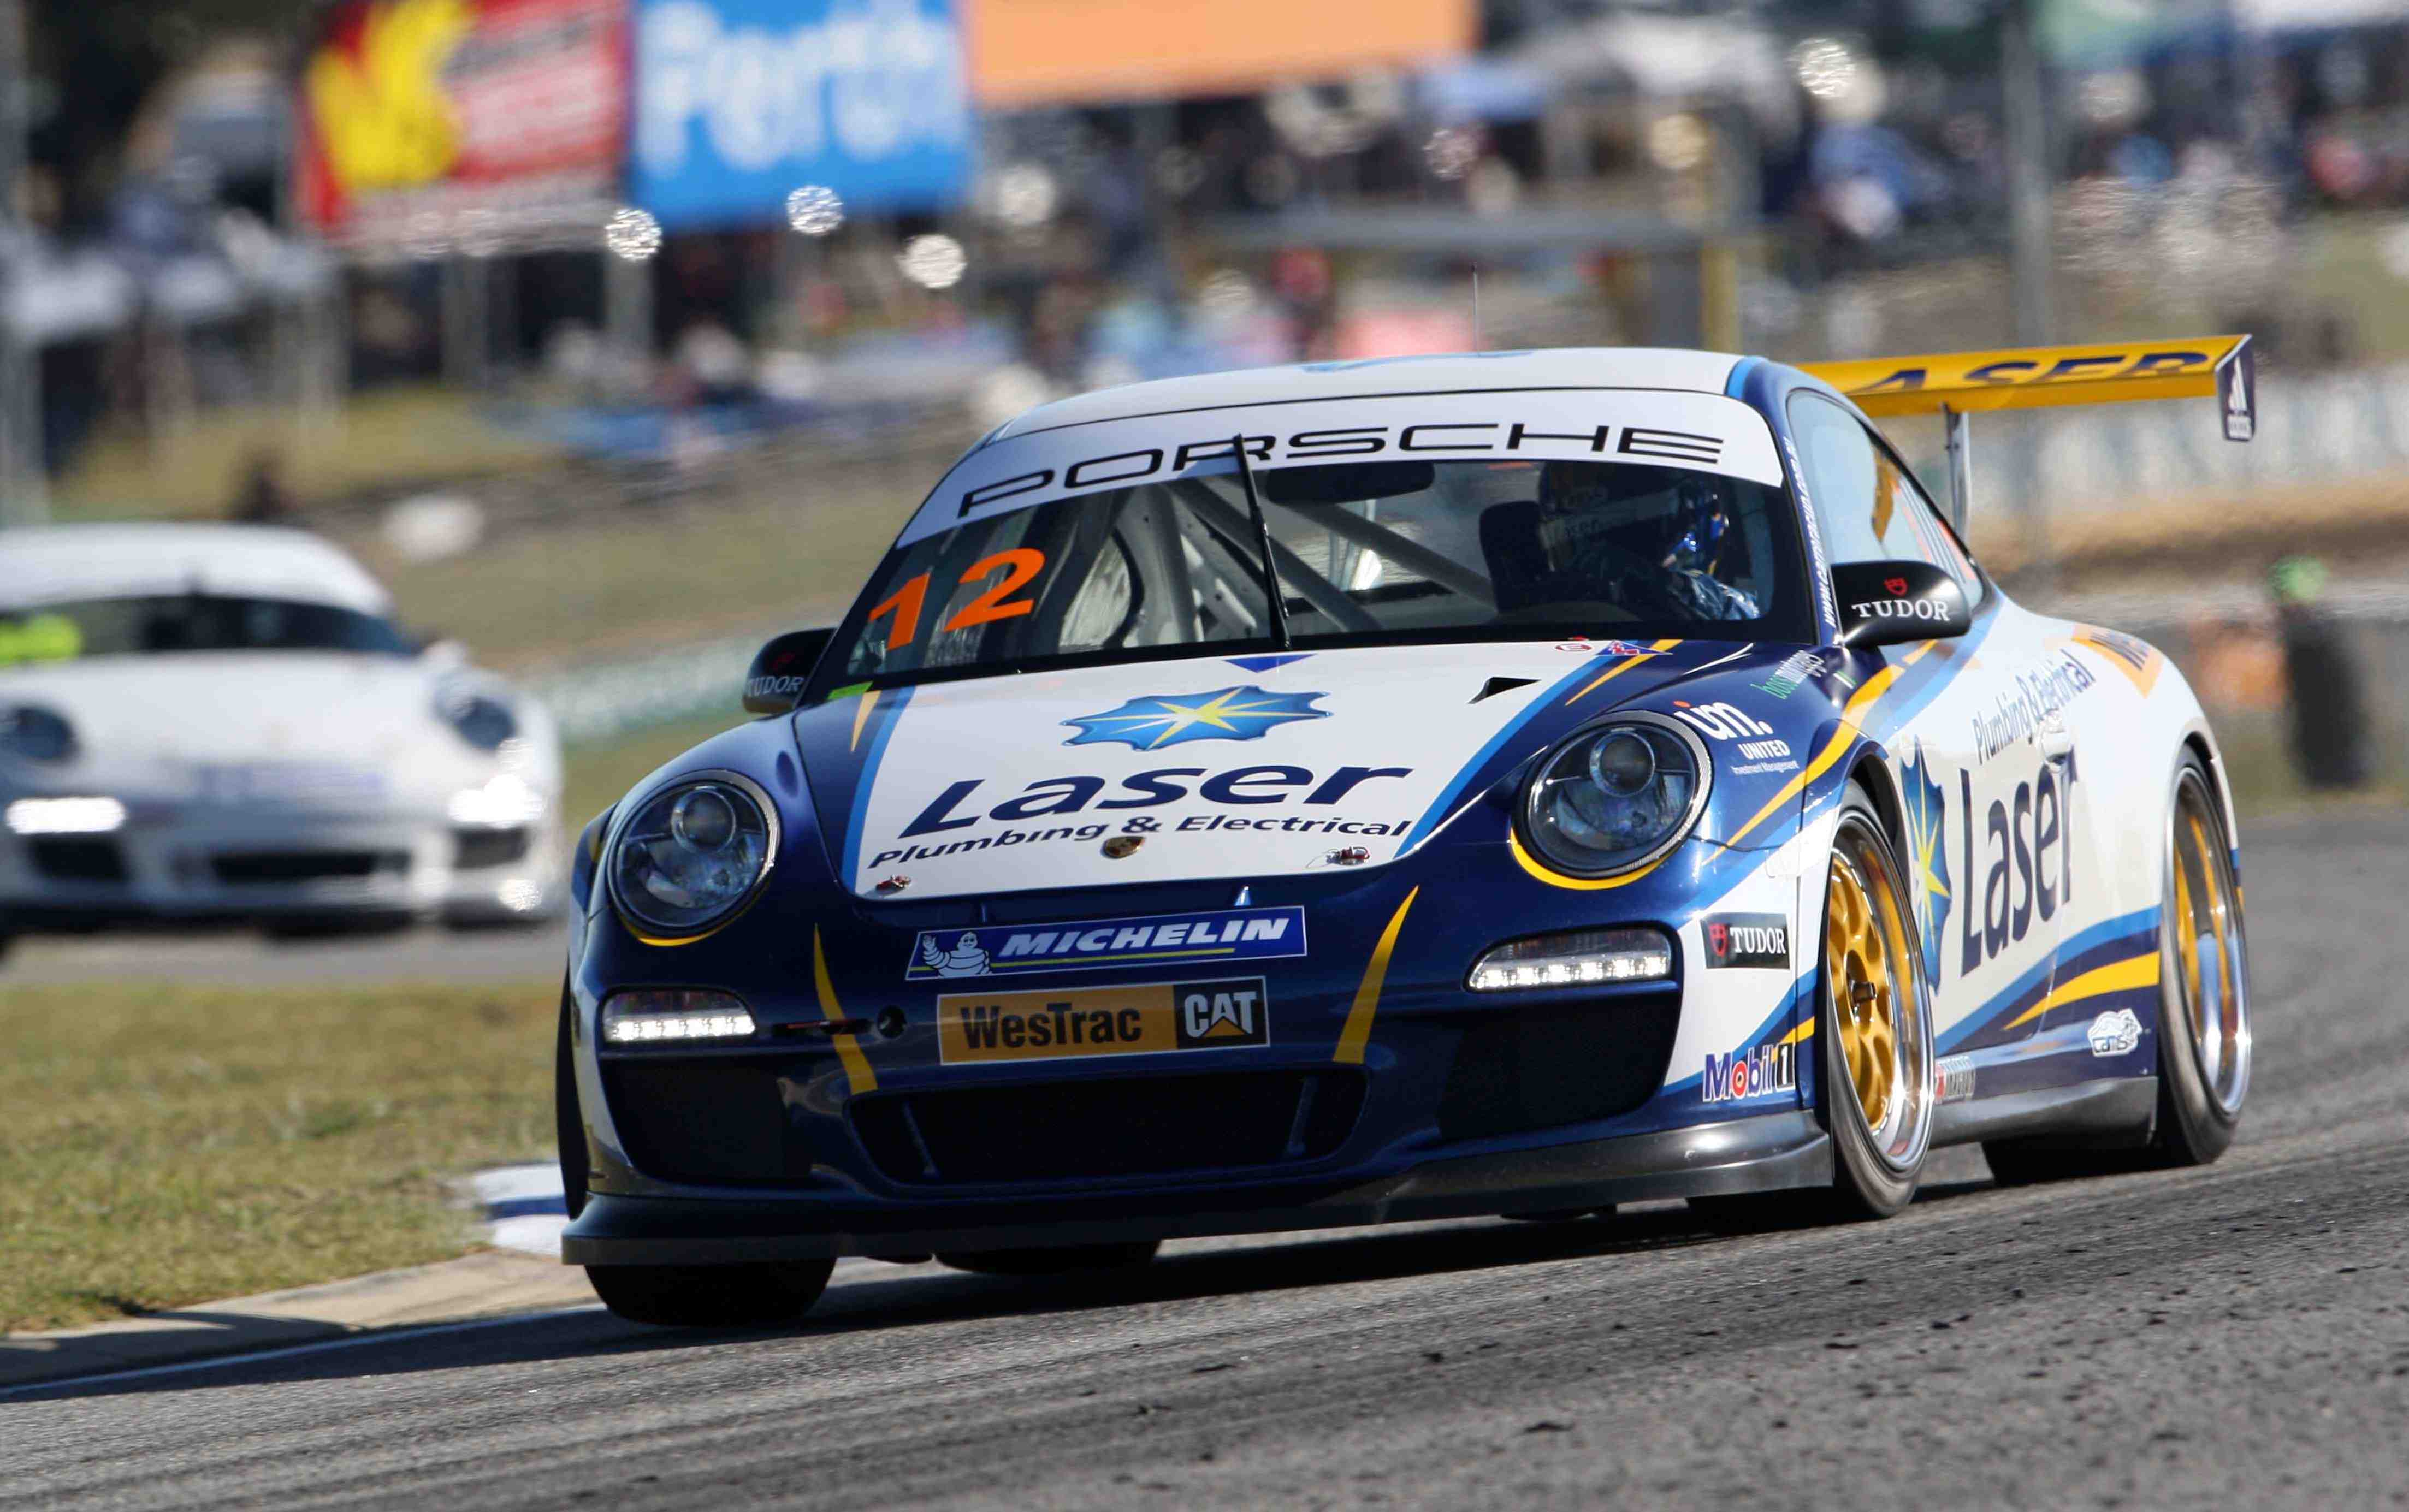 Steve Richards tops times in Carrera Cup